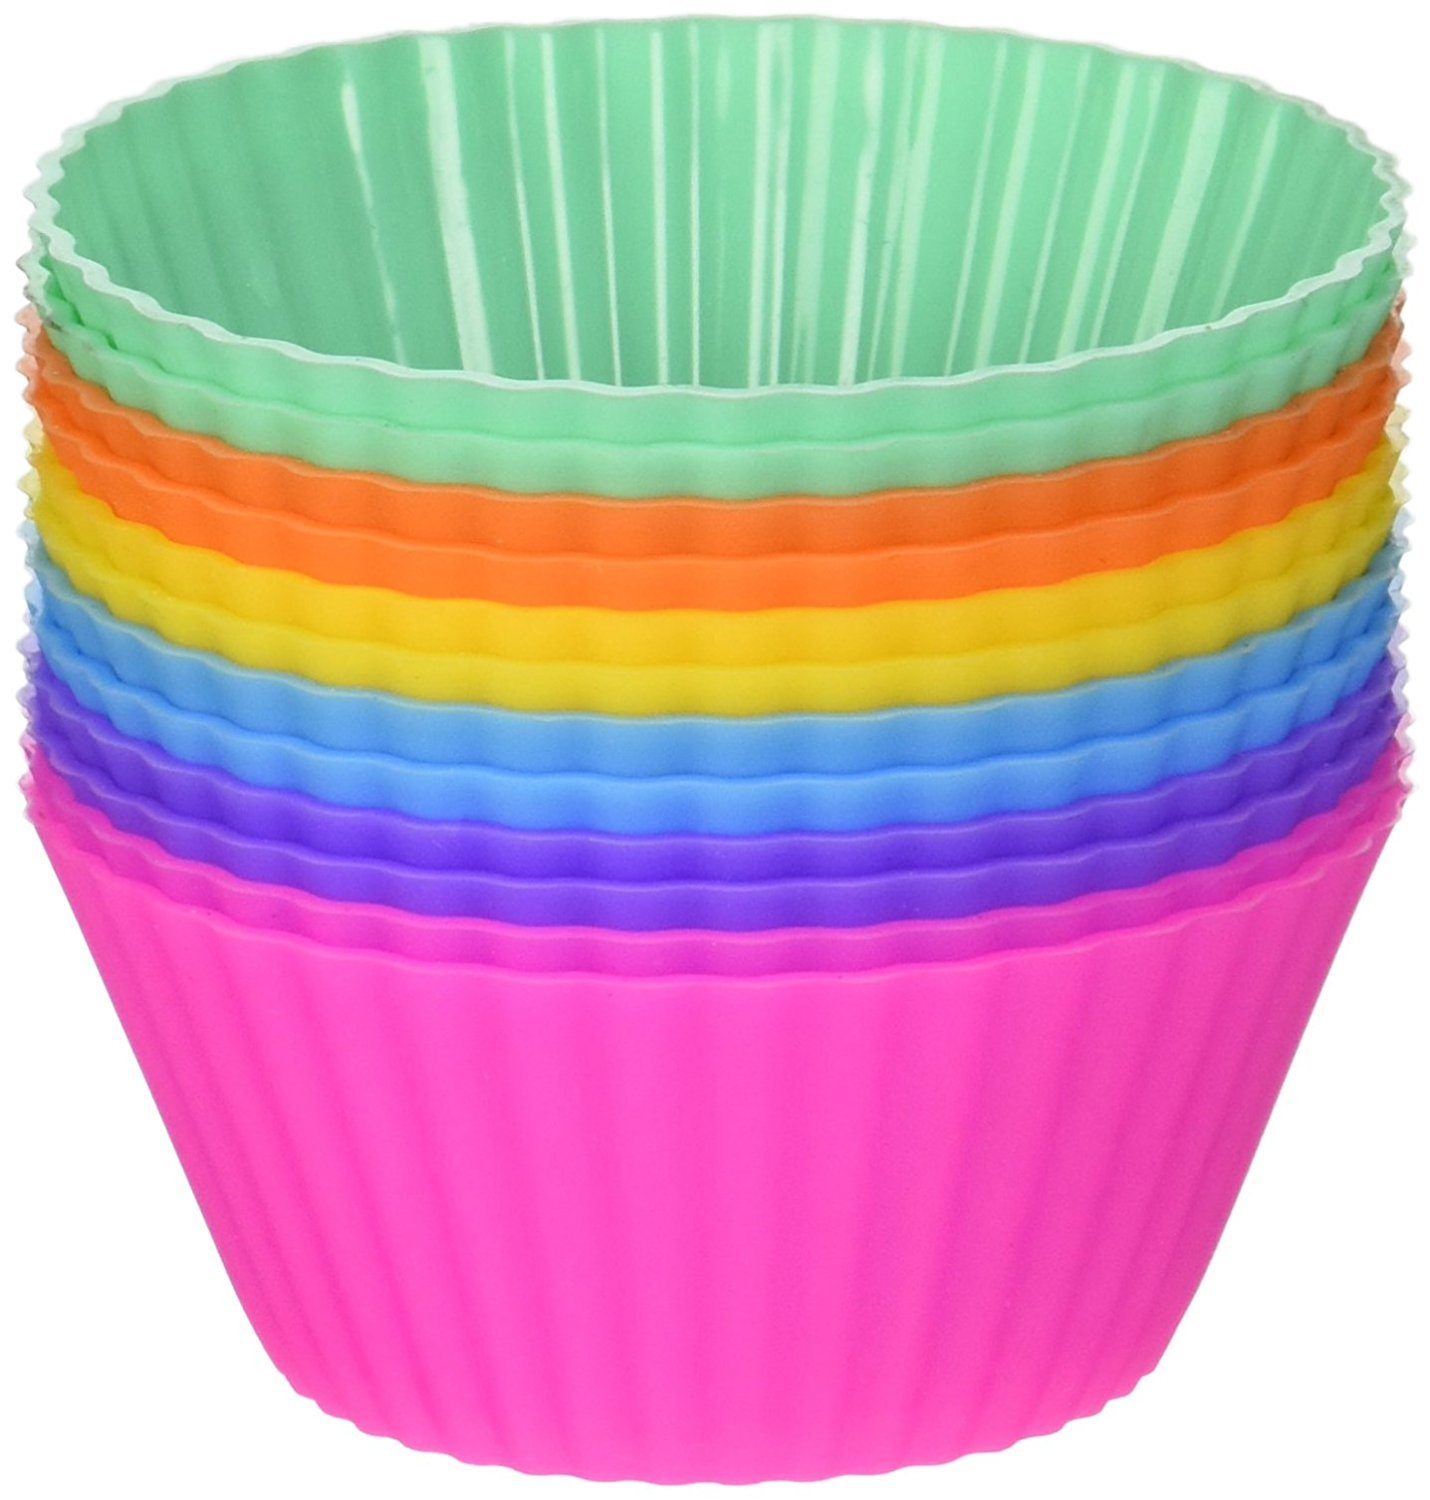 Hulless Reusable Silicone Baking Cups - Set of 12 Nonstick Cupcake Liners in 6 Vibrant Colors